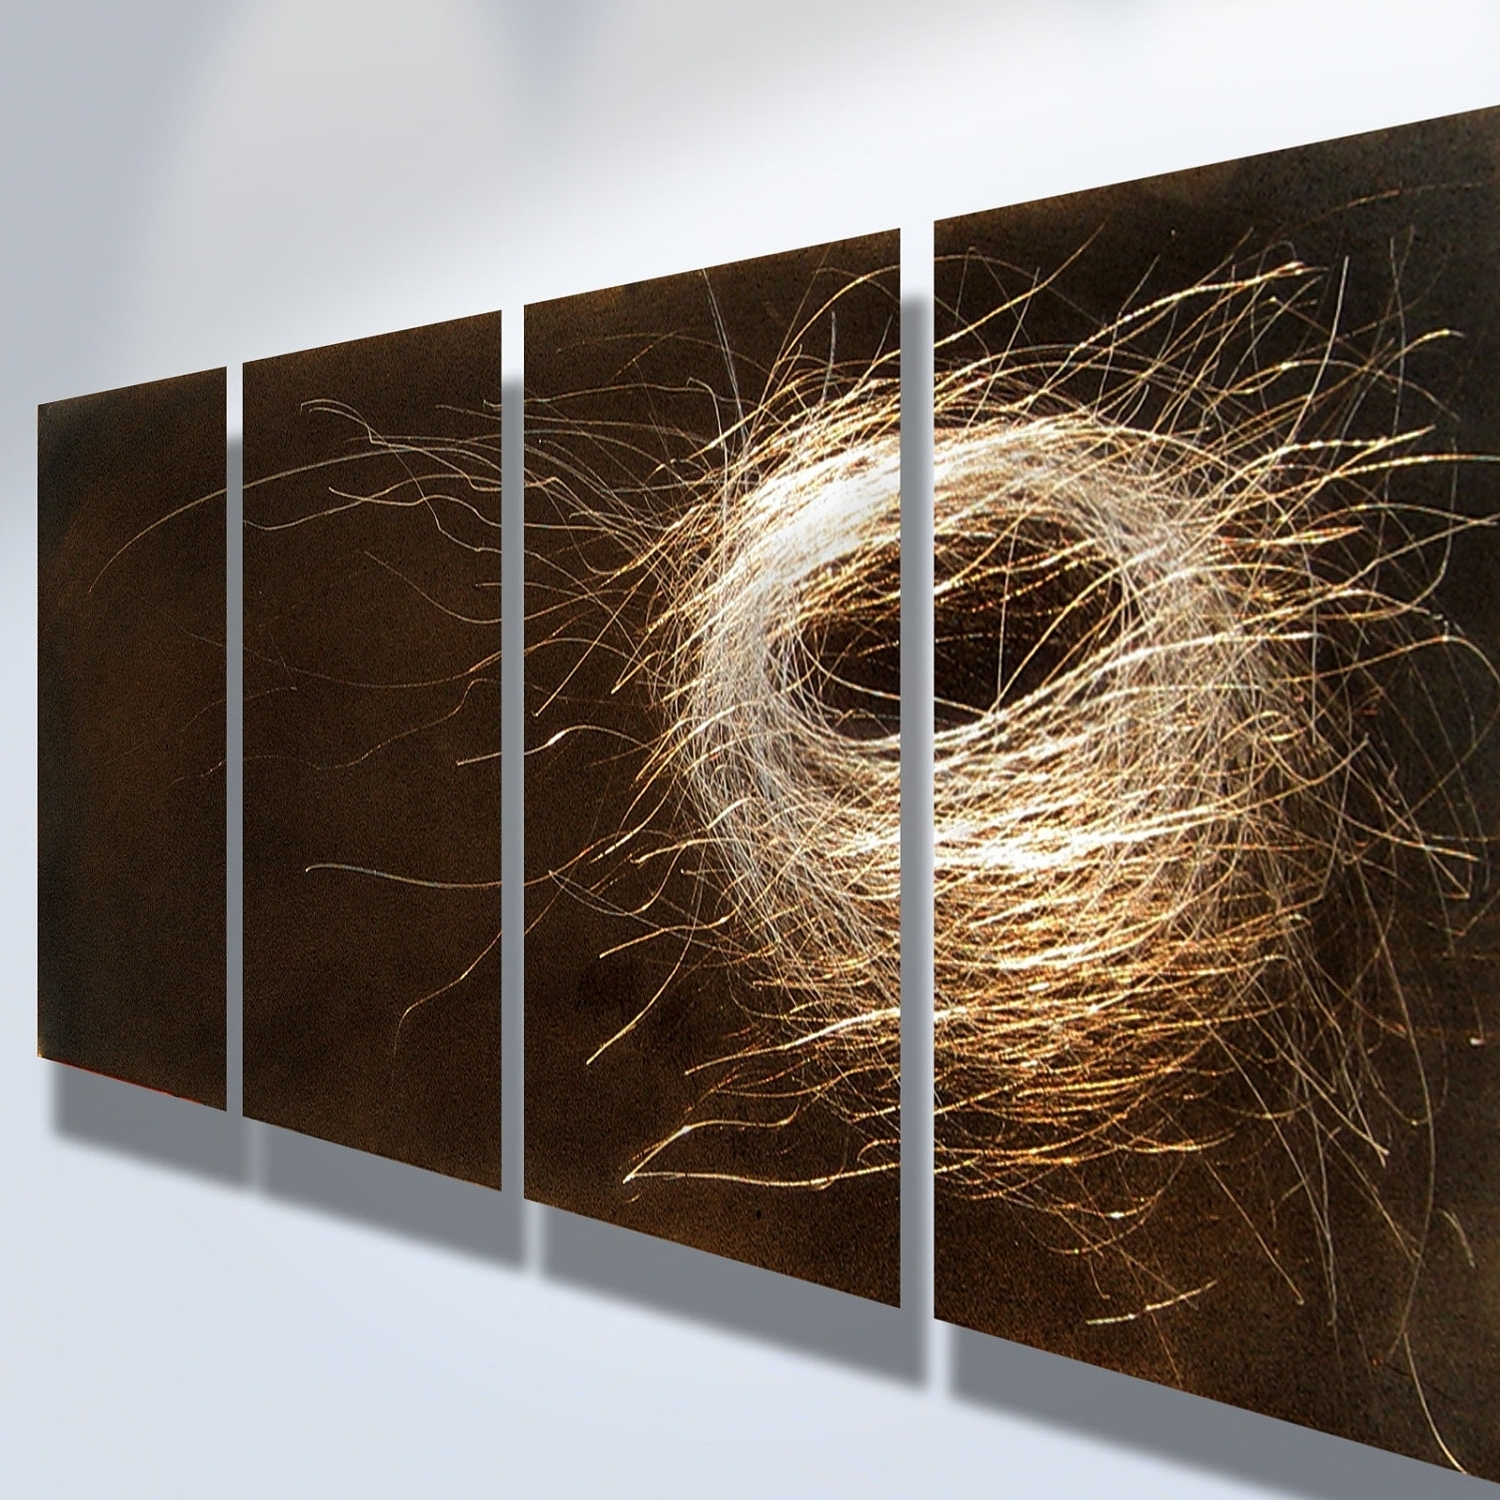 Wall Art Panels Intended For Latest Popular Metal Wall Art Panels — Wazillo Media : Ways To Hang Metal (View 11 of 15)